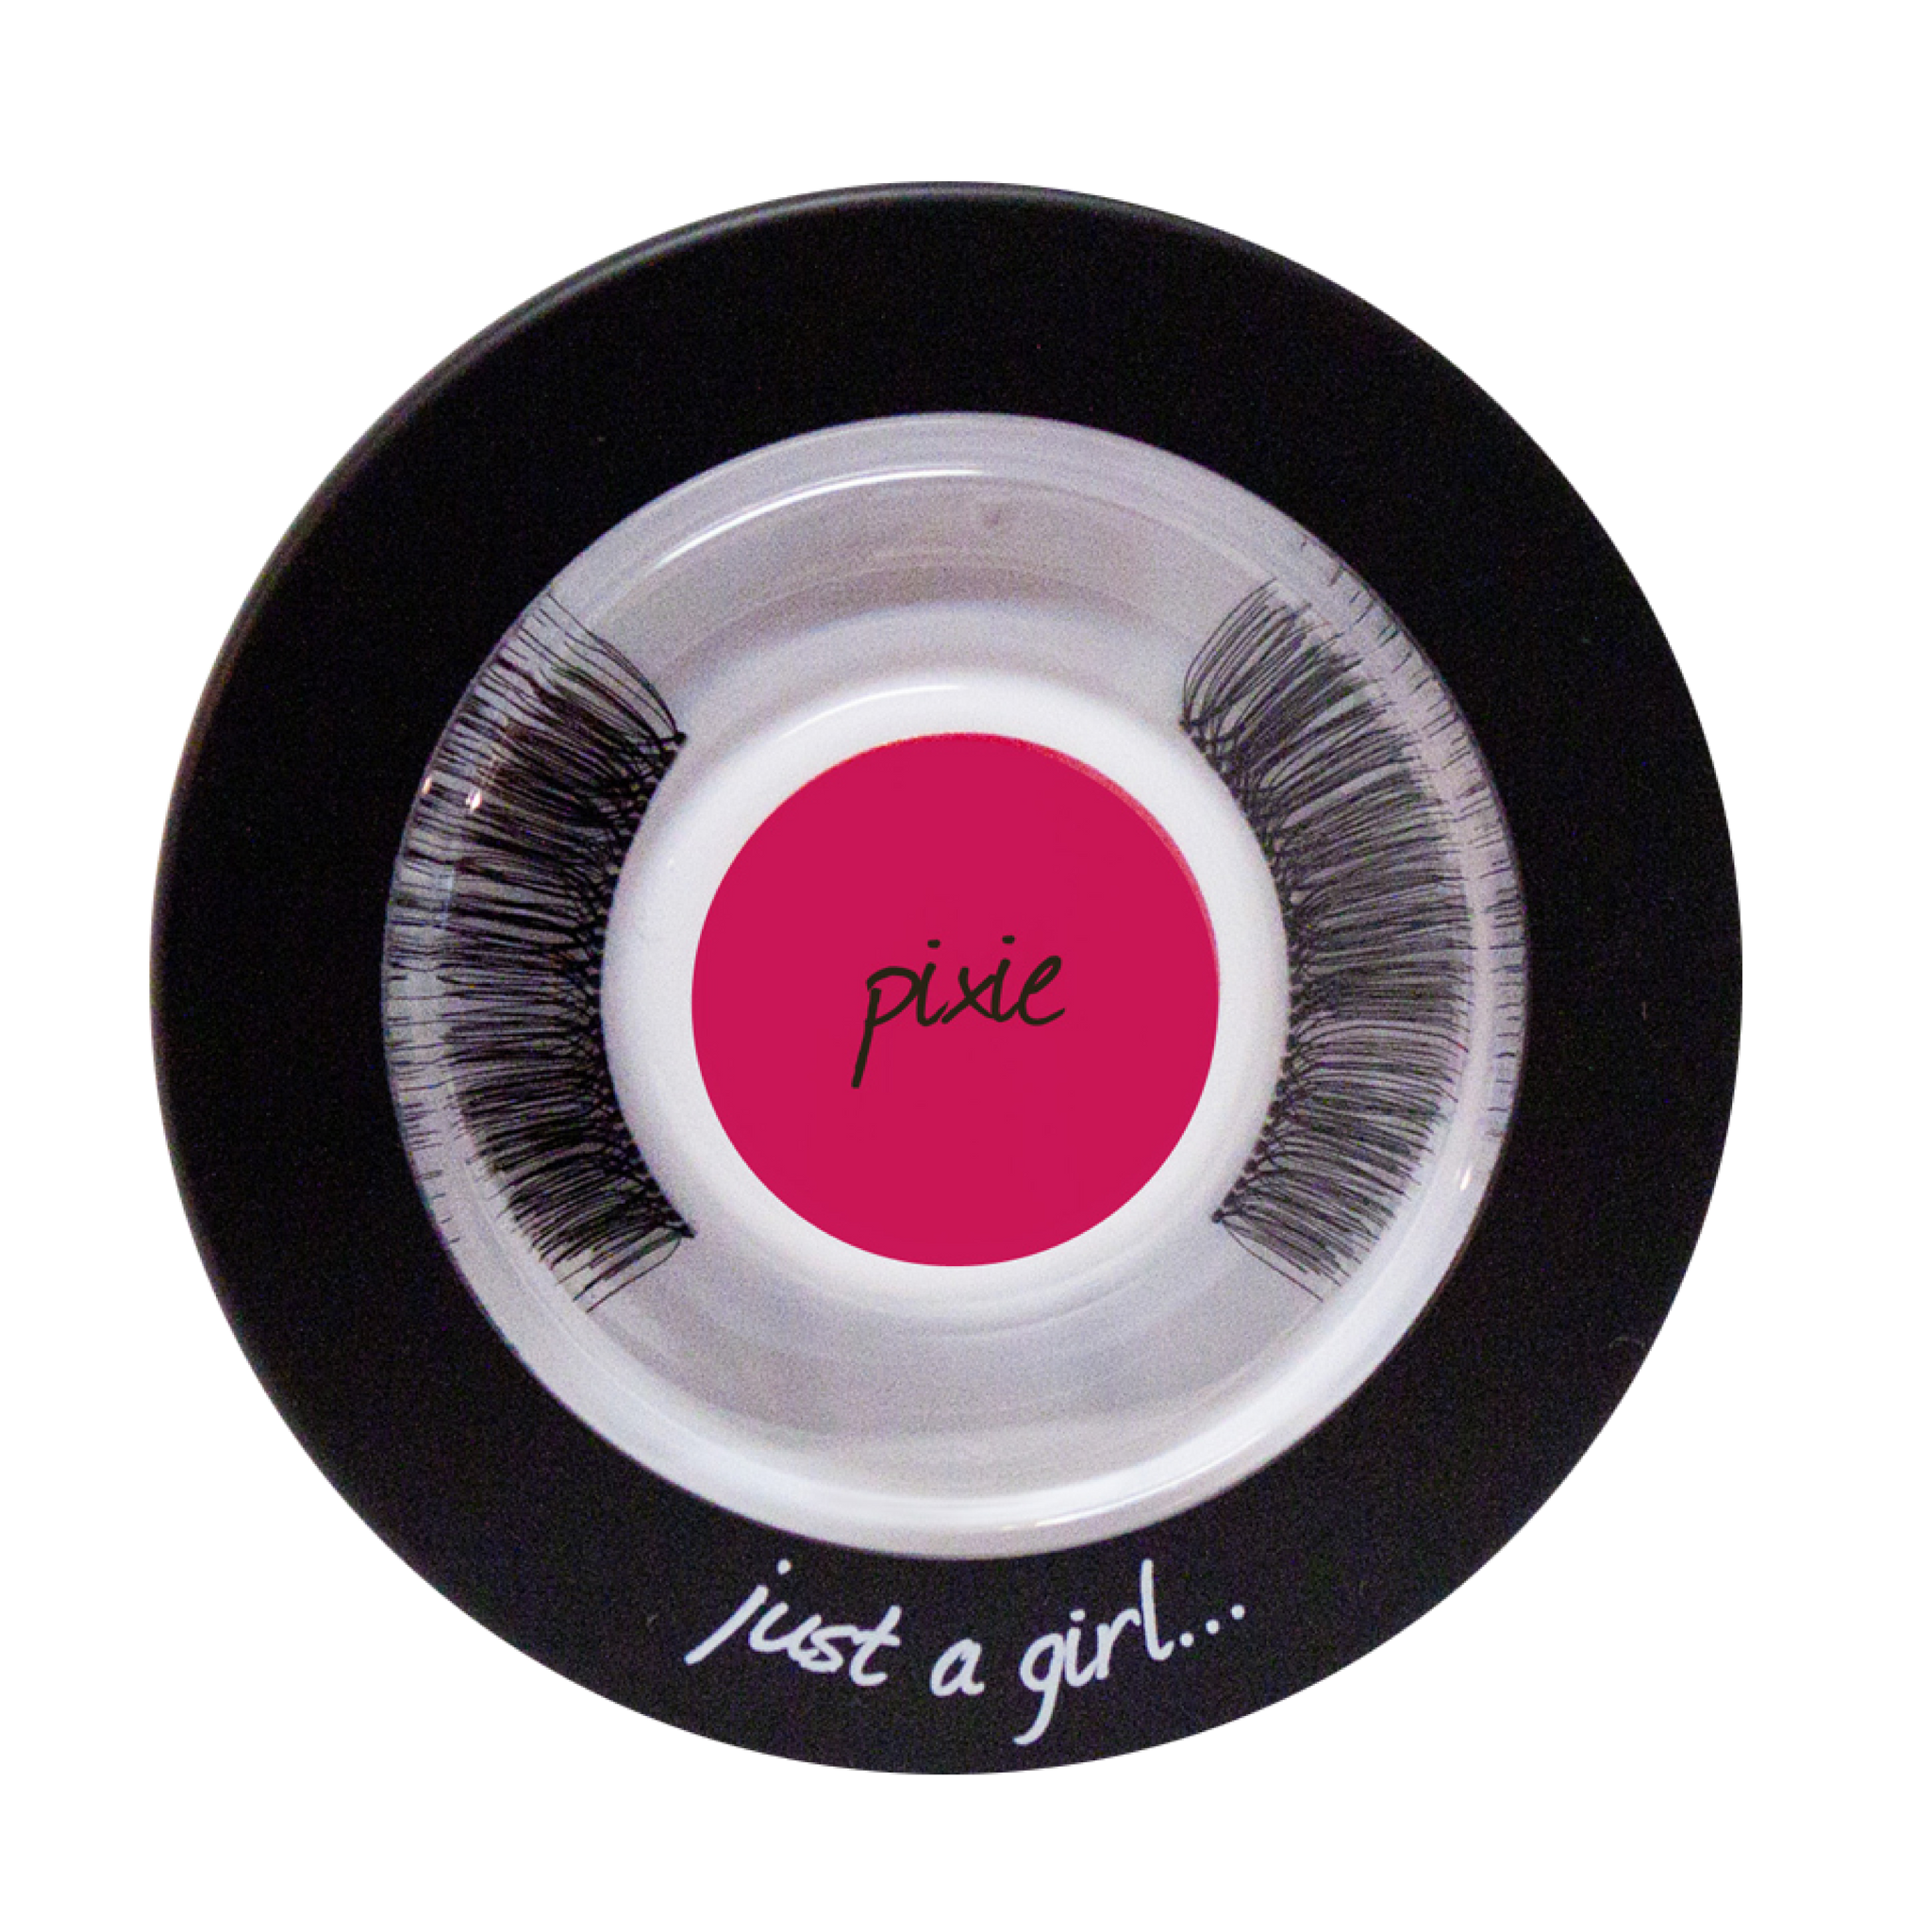 Bullseye 'Just a Girl…' PIXIE Lash Compact